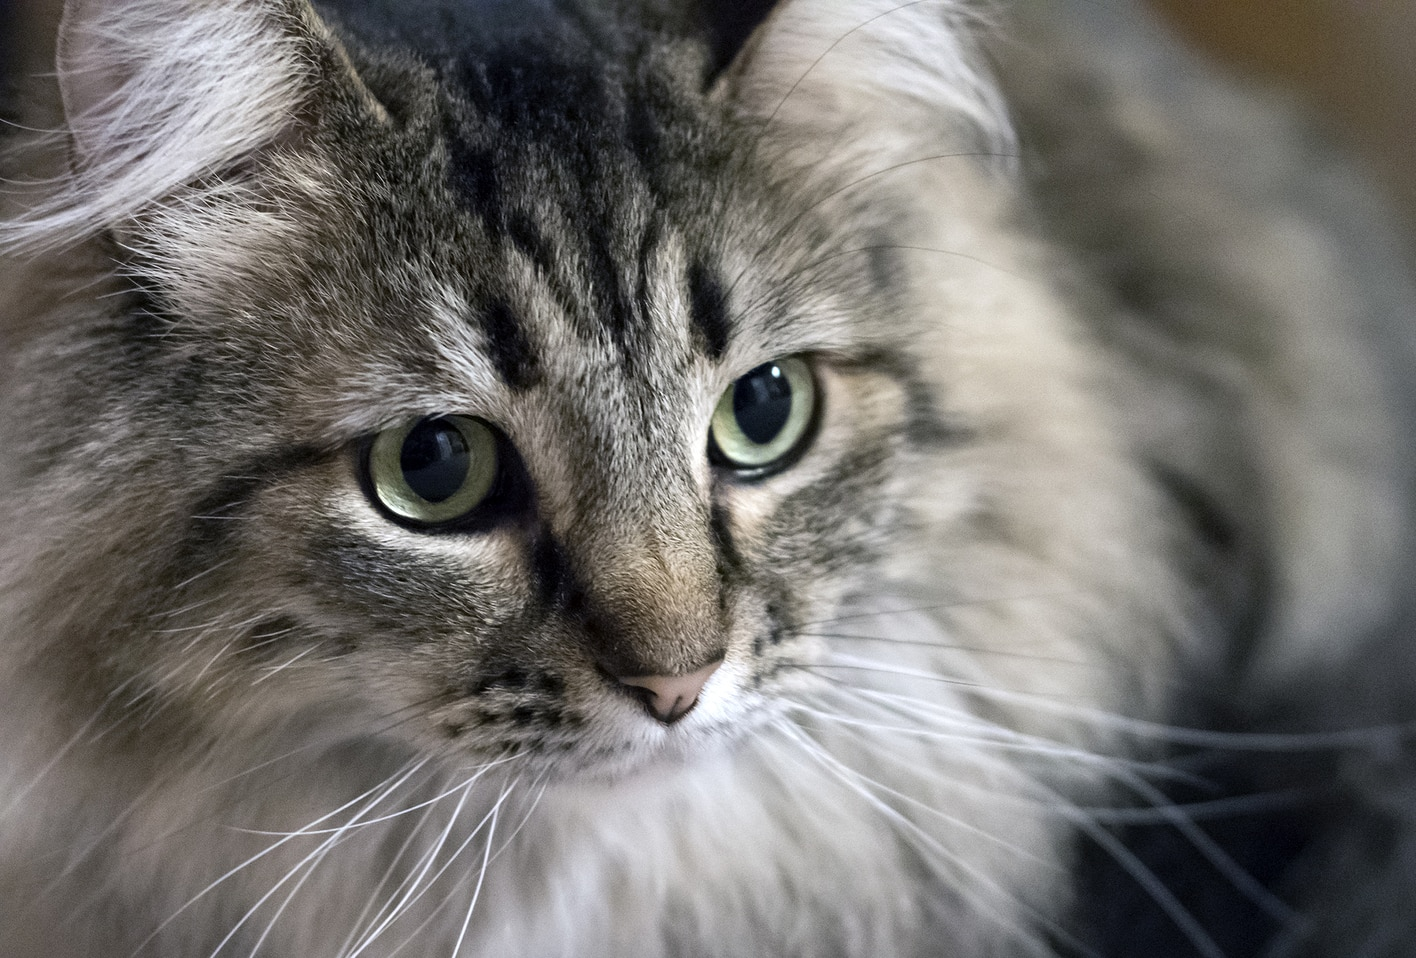 maine coon cat looks off into distance.